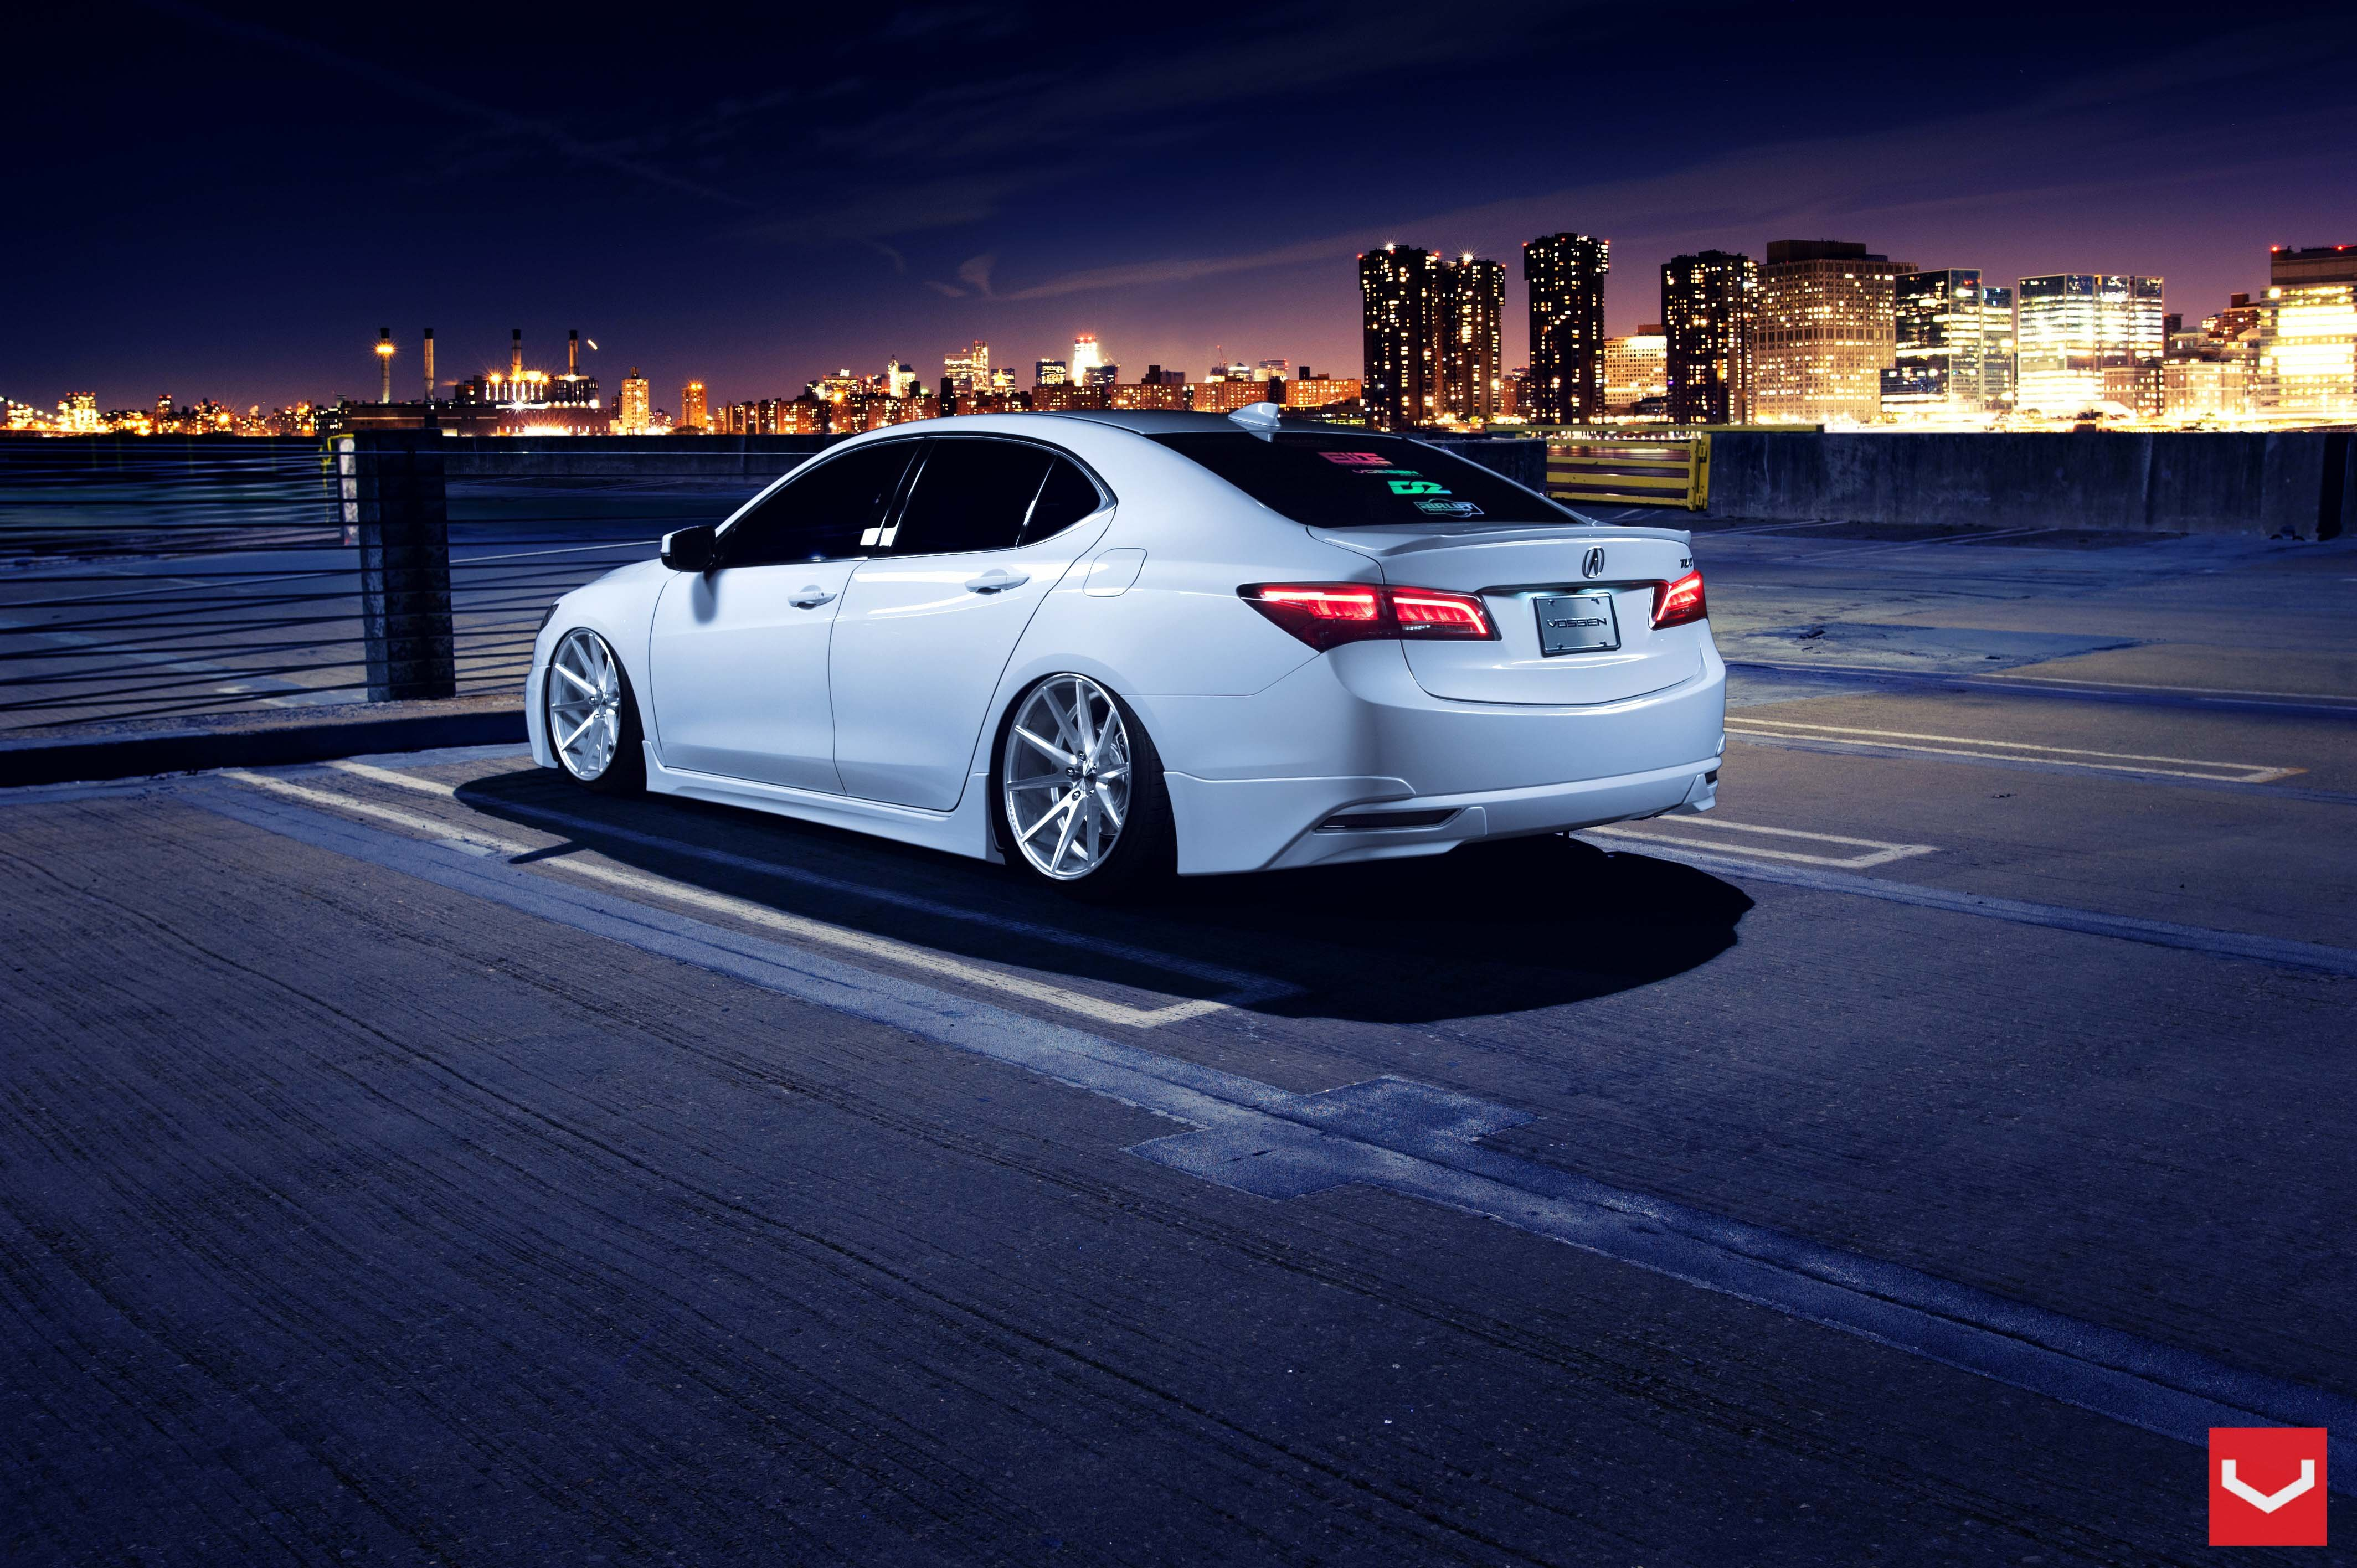 Acura TLX vossen wheels tuning cars wallpaper | 4256x2832 | 572381 | WallpaperUP